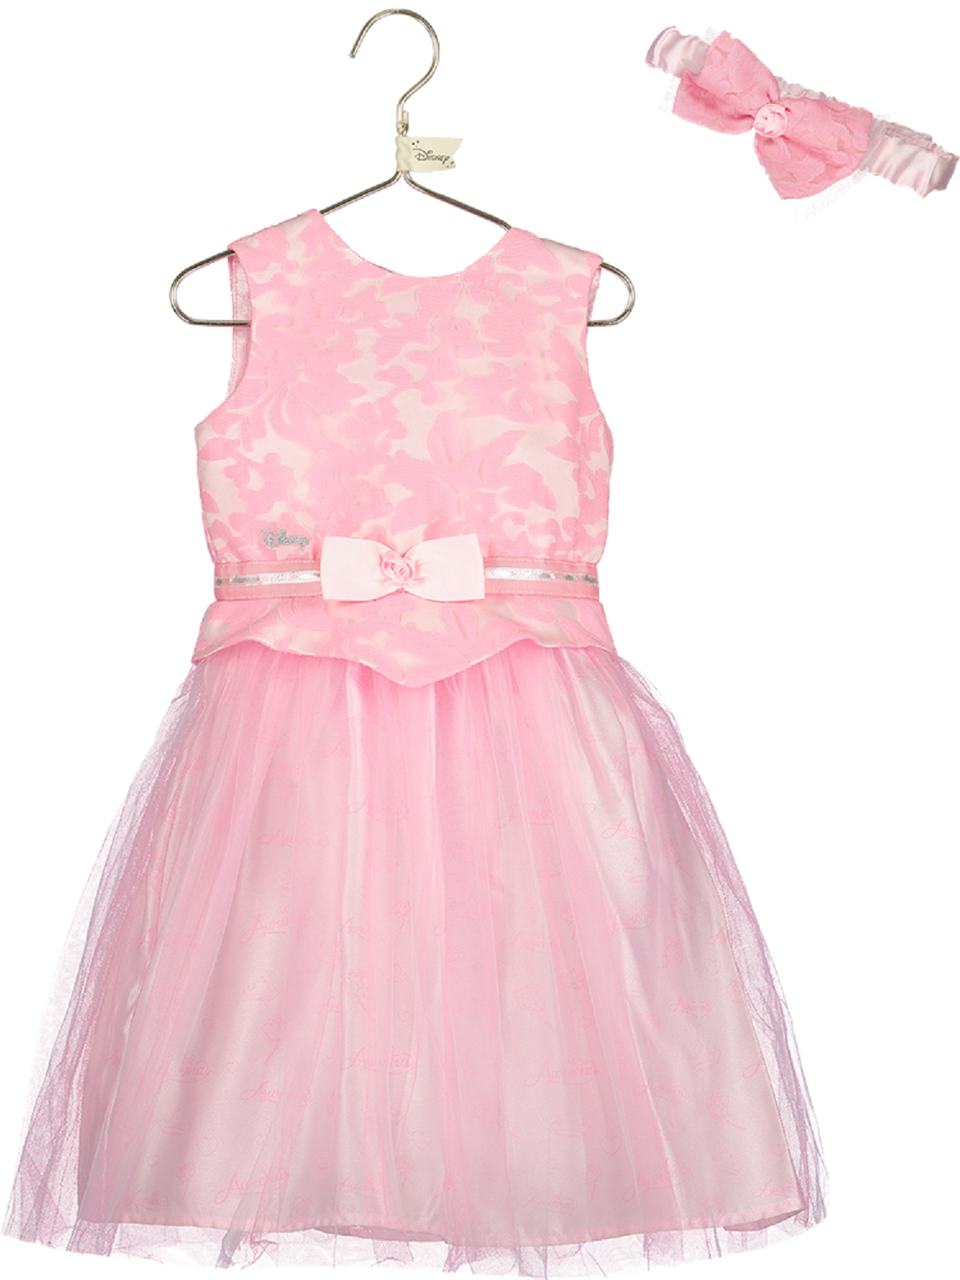 Sleeping Beauty Baby - Party Dress